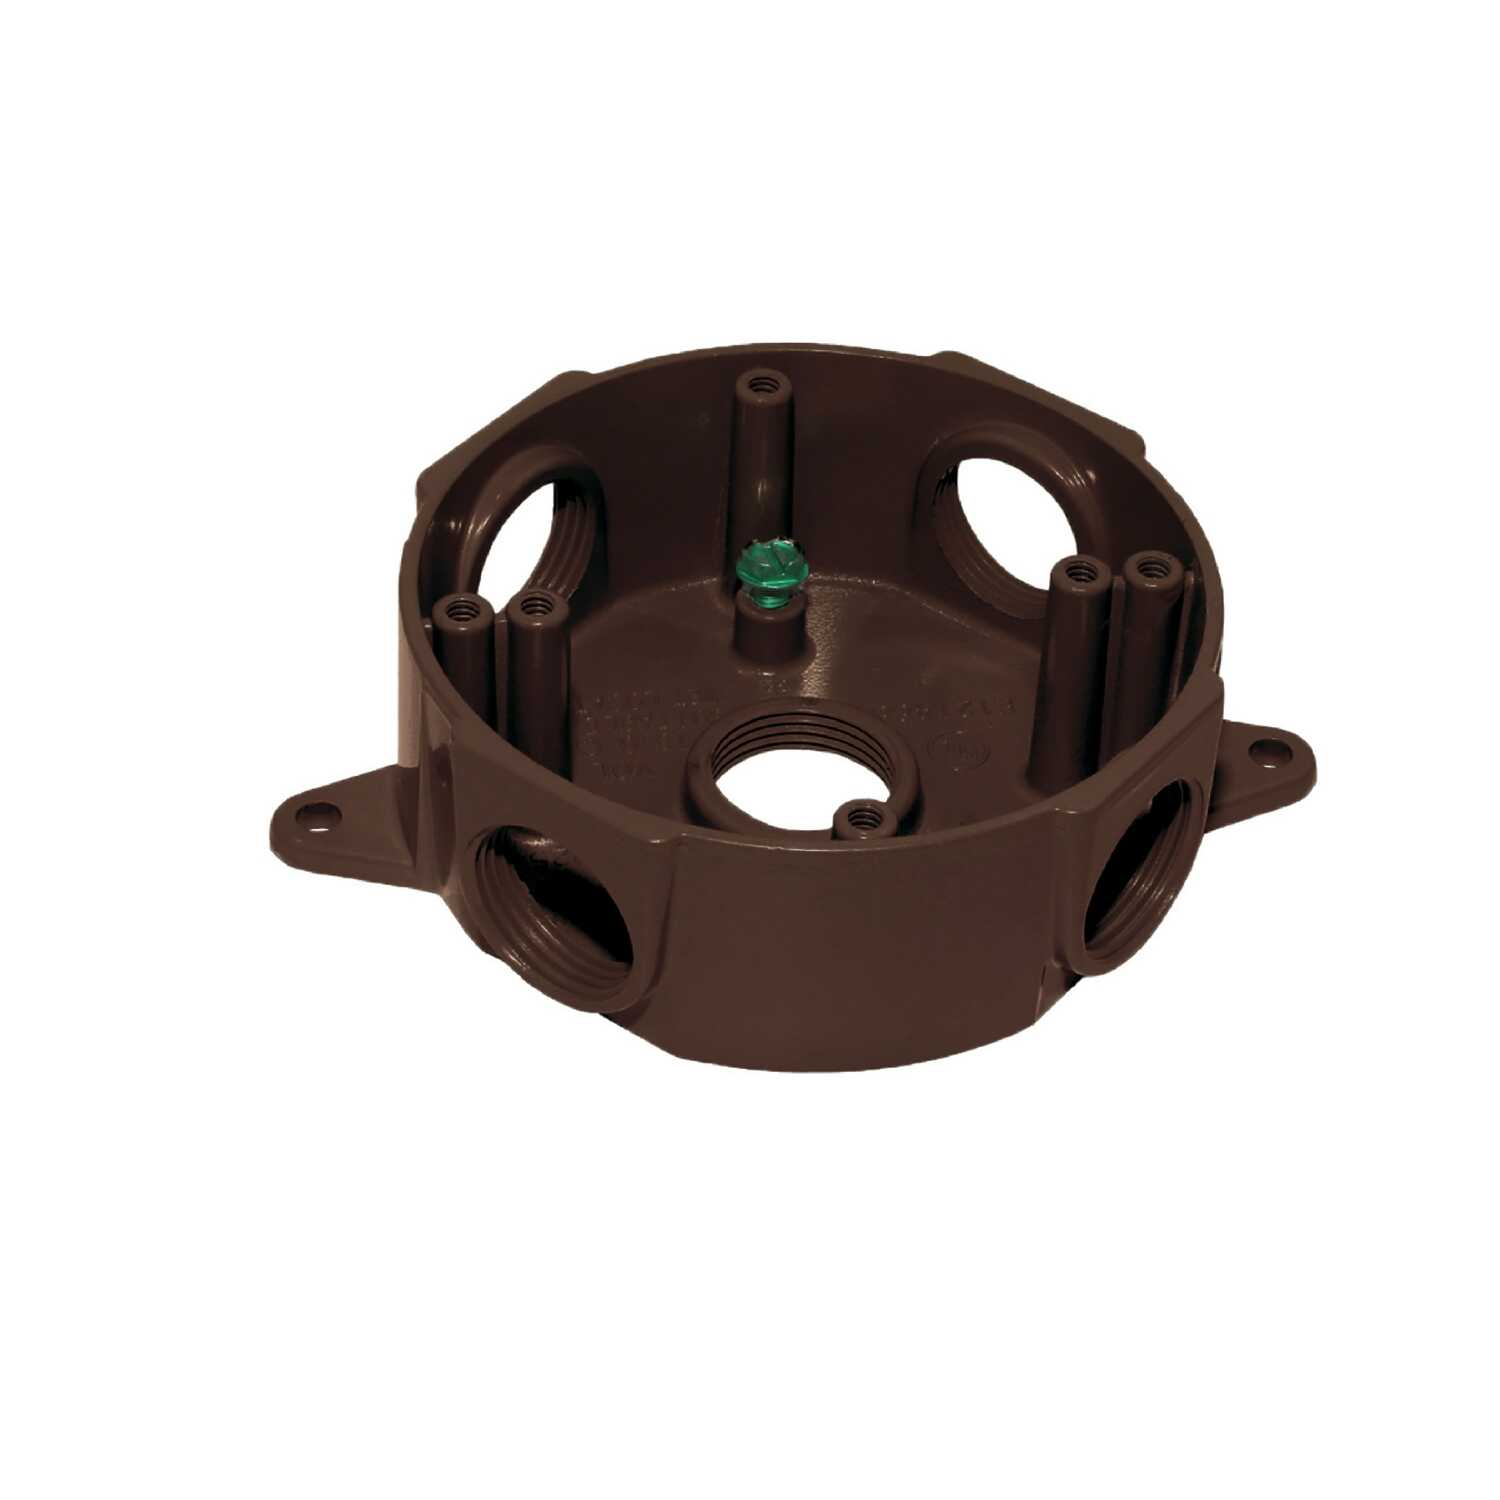 Sigma  2-5/16 in. Round  Aluminum  5 Gang  Outlet Box  Bronze  5 gang